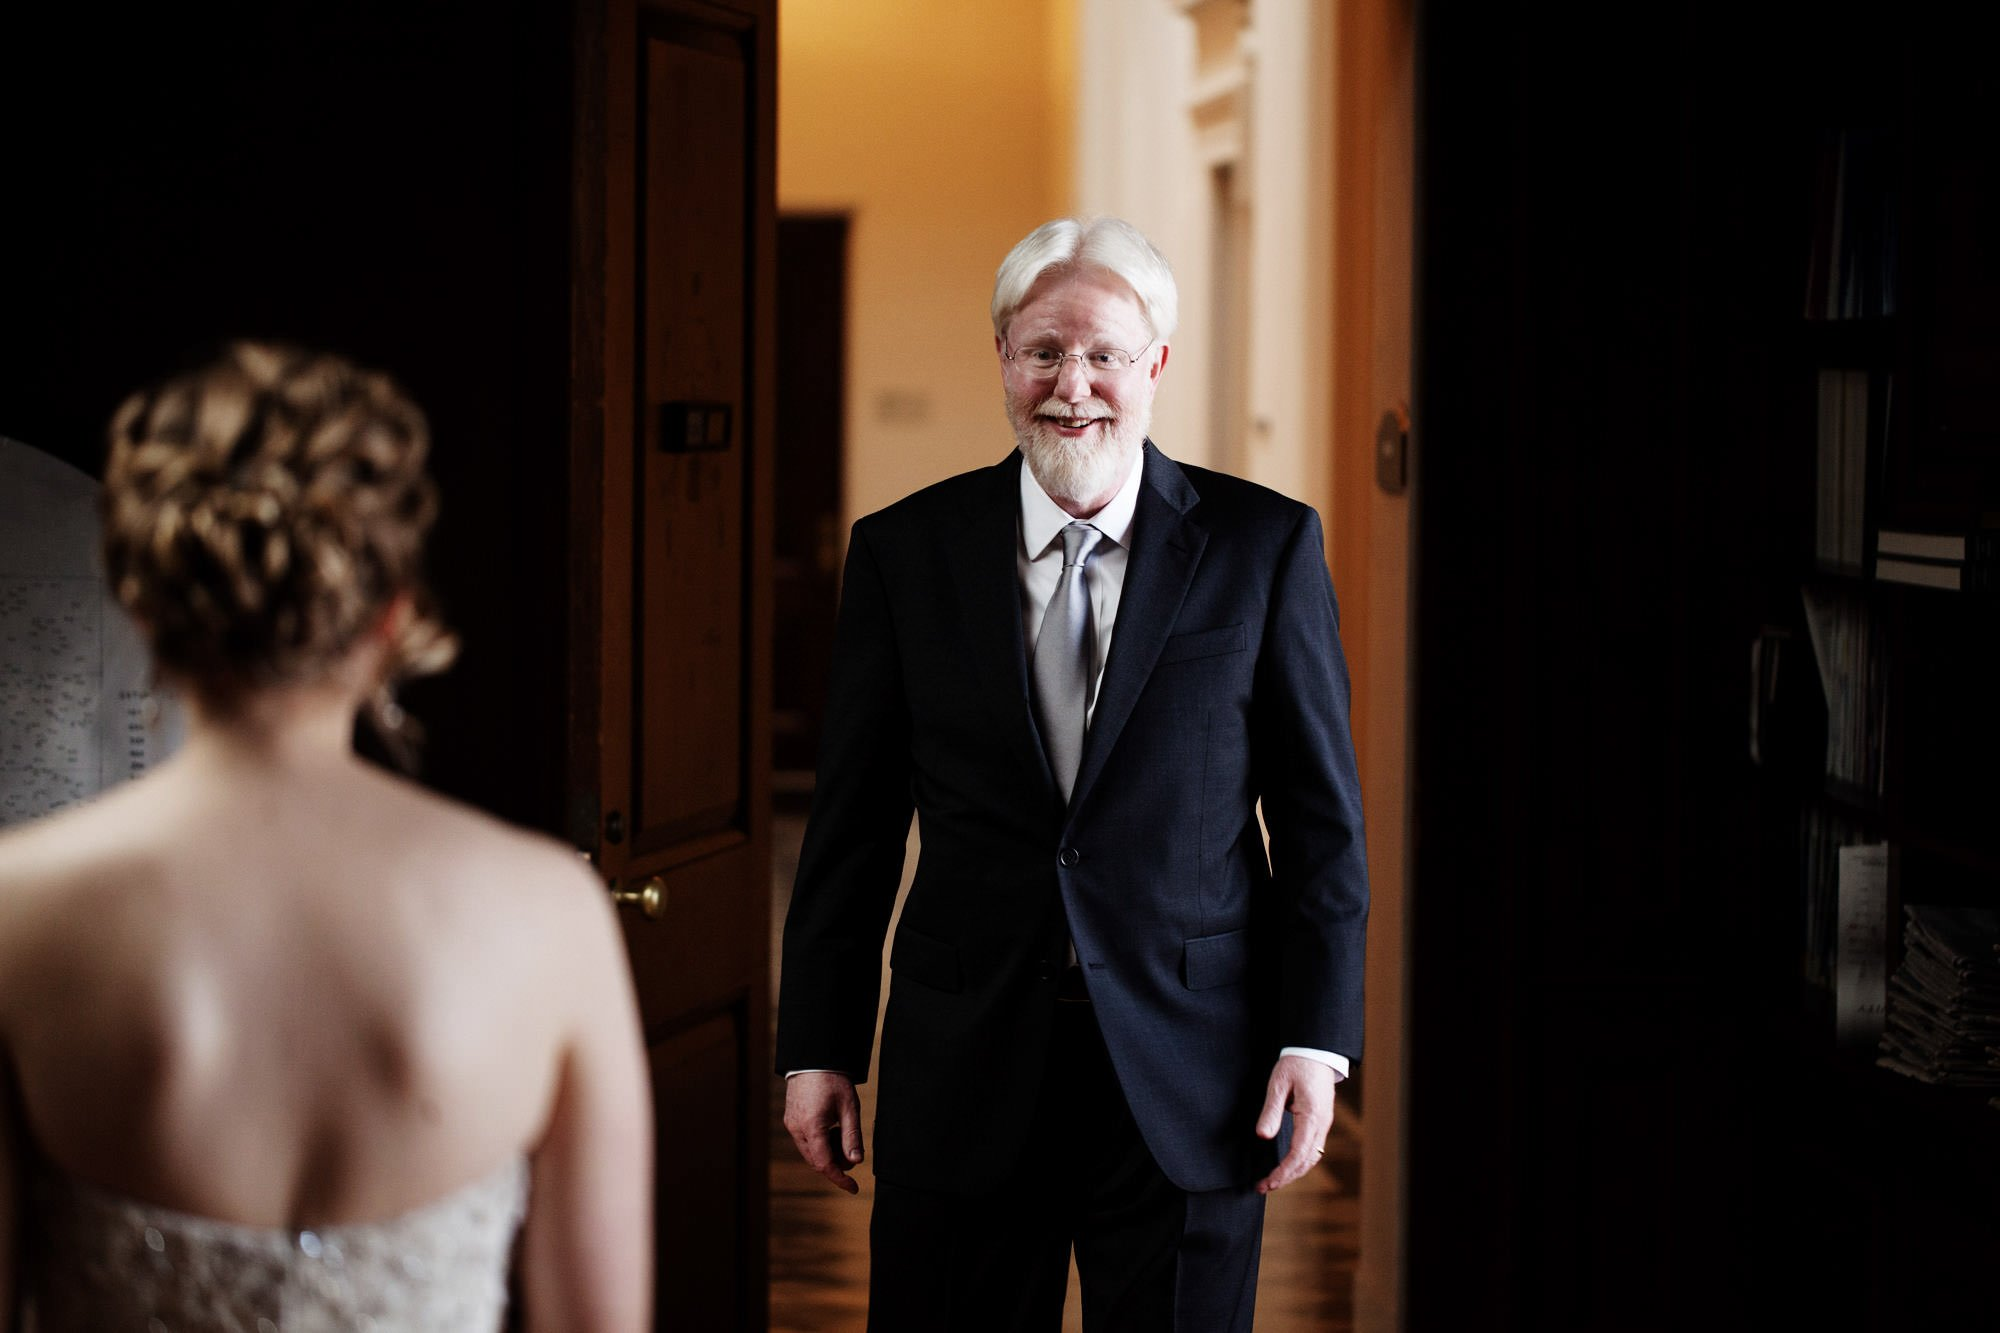 The father of the bride looks at his daughter in the wedding dress before the Carnegie Institute for Science Wedding ceremony.